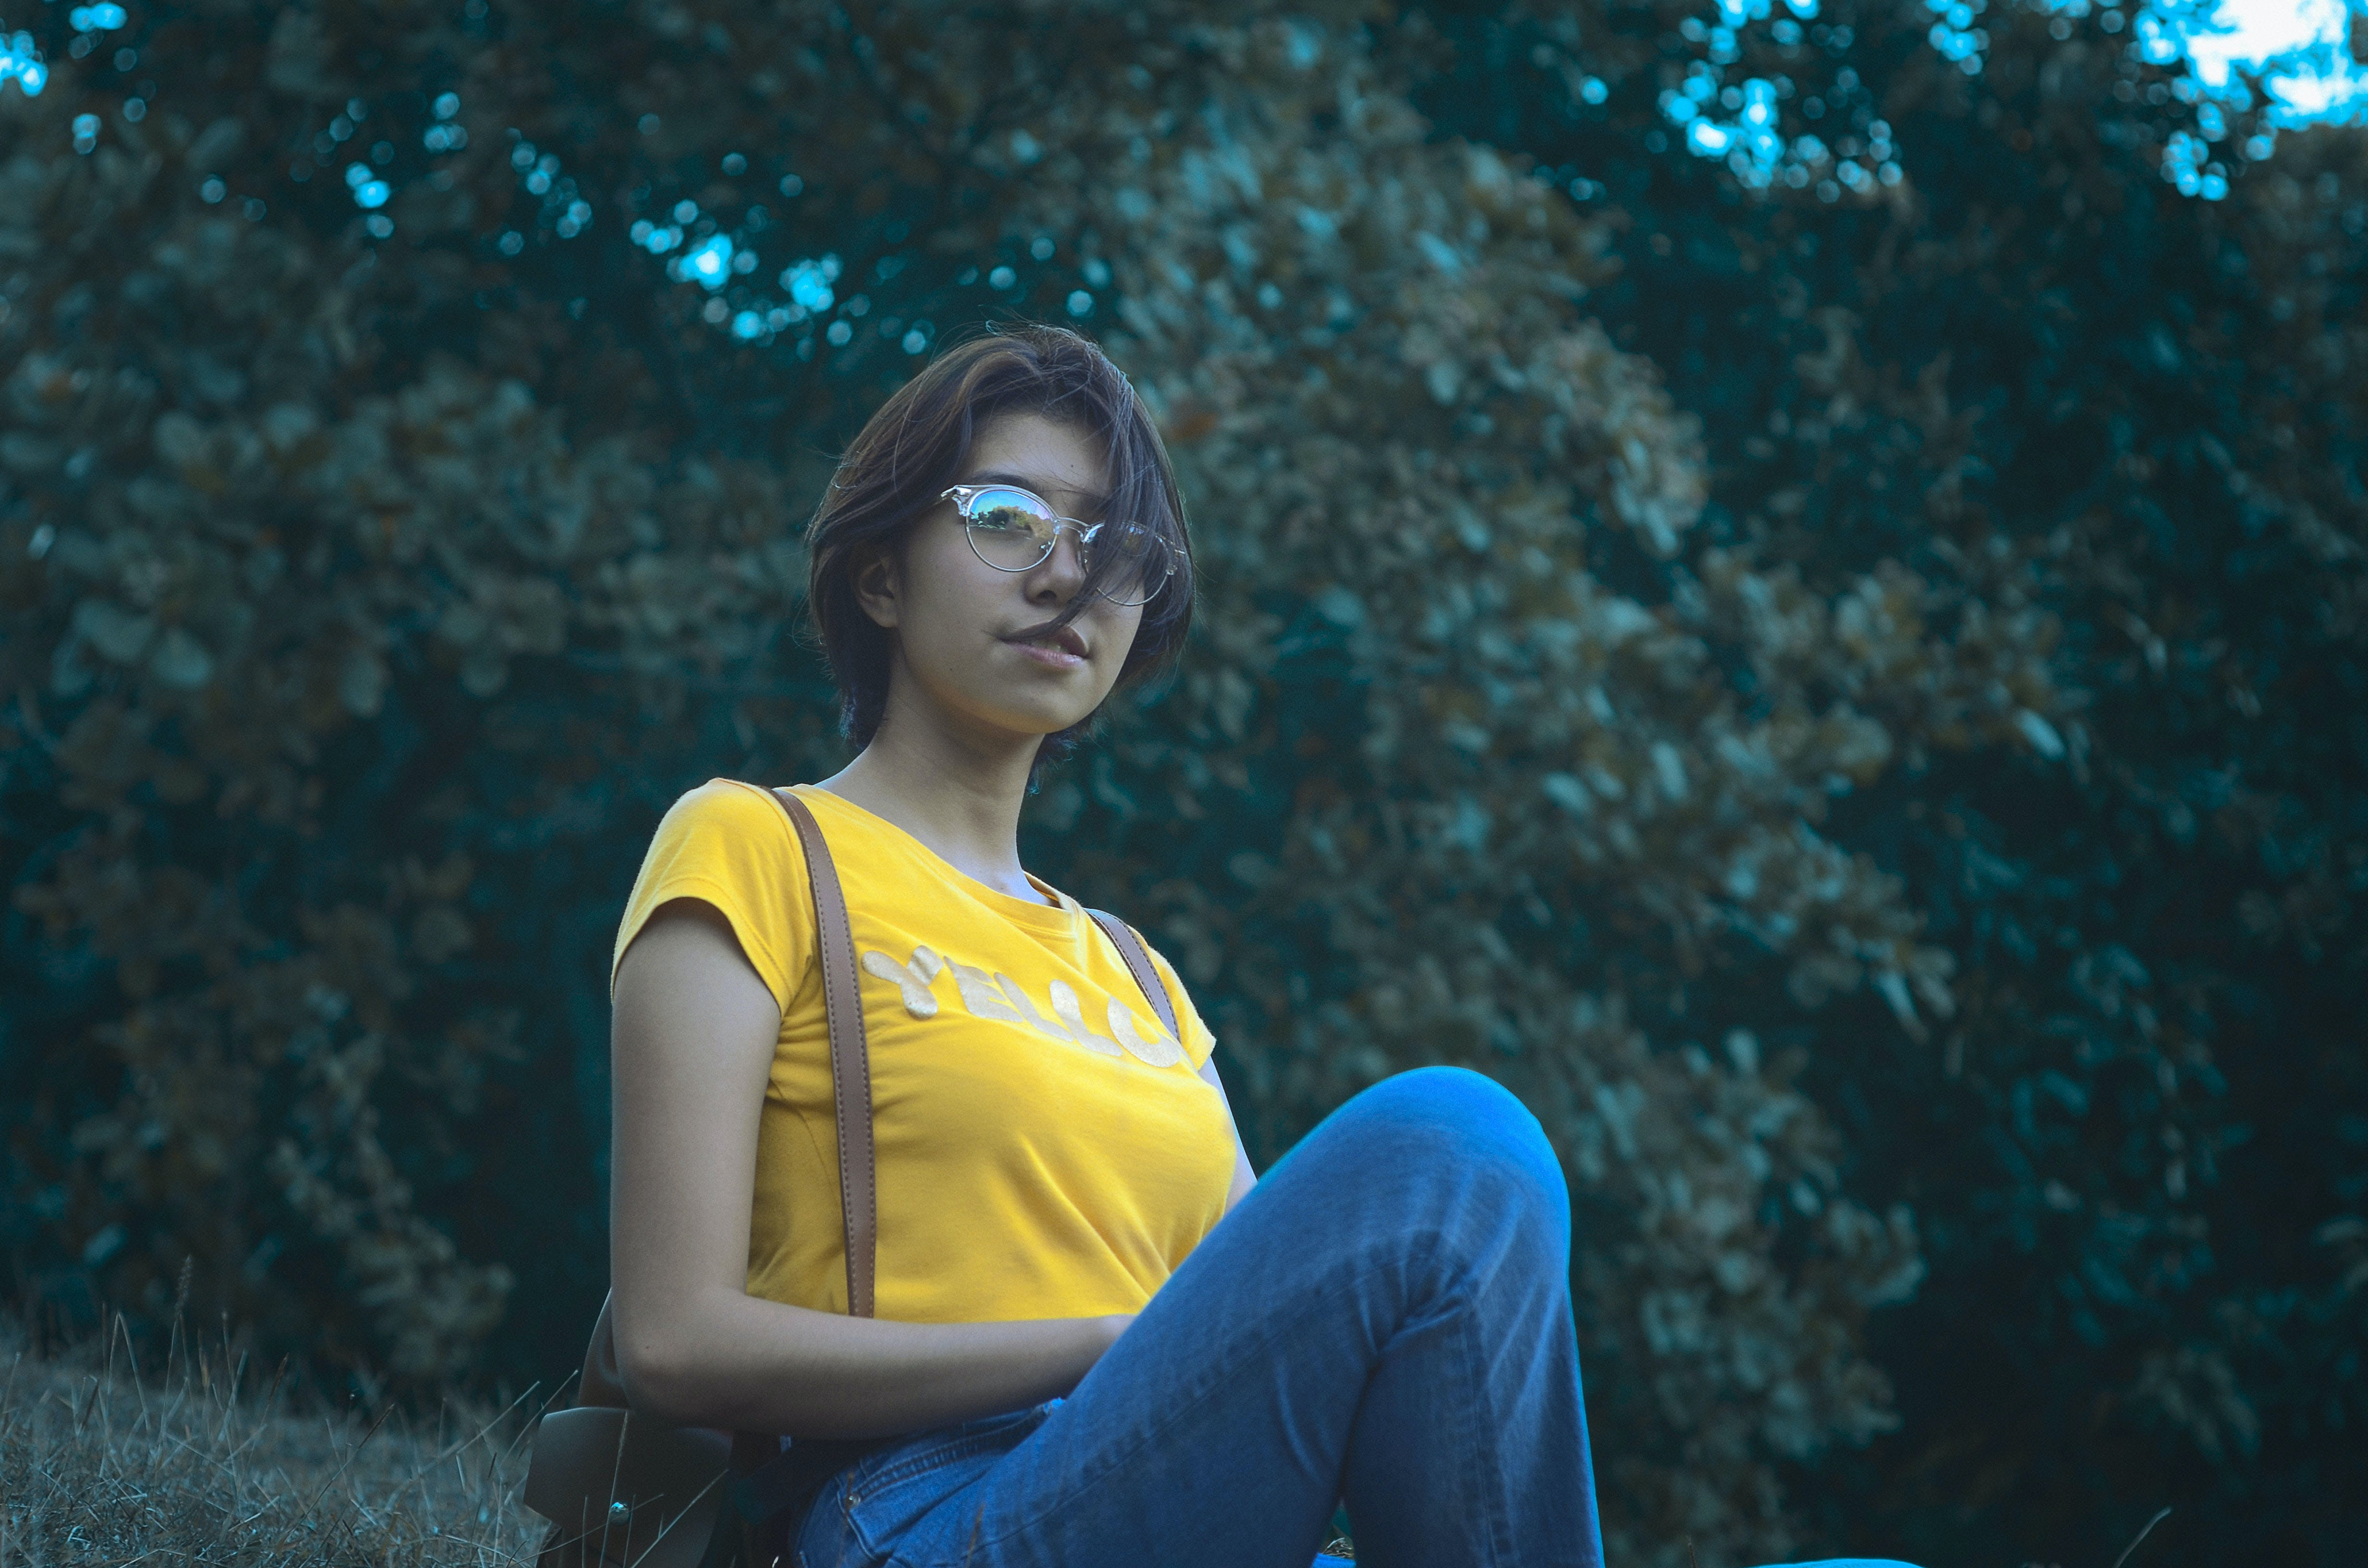 Woman in Yellow Short-sleeved Top and Blue Denim Jeans